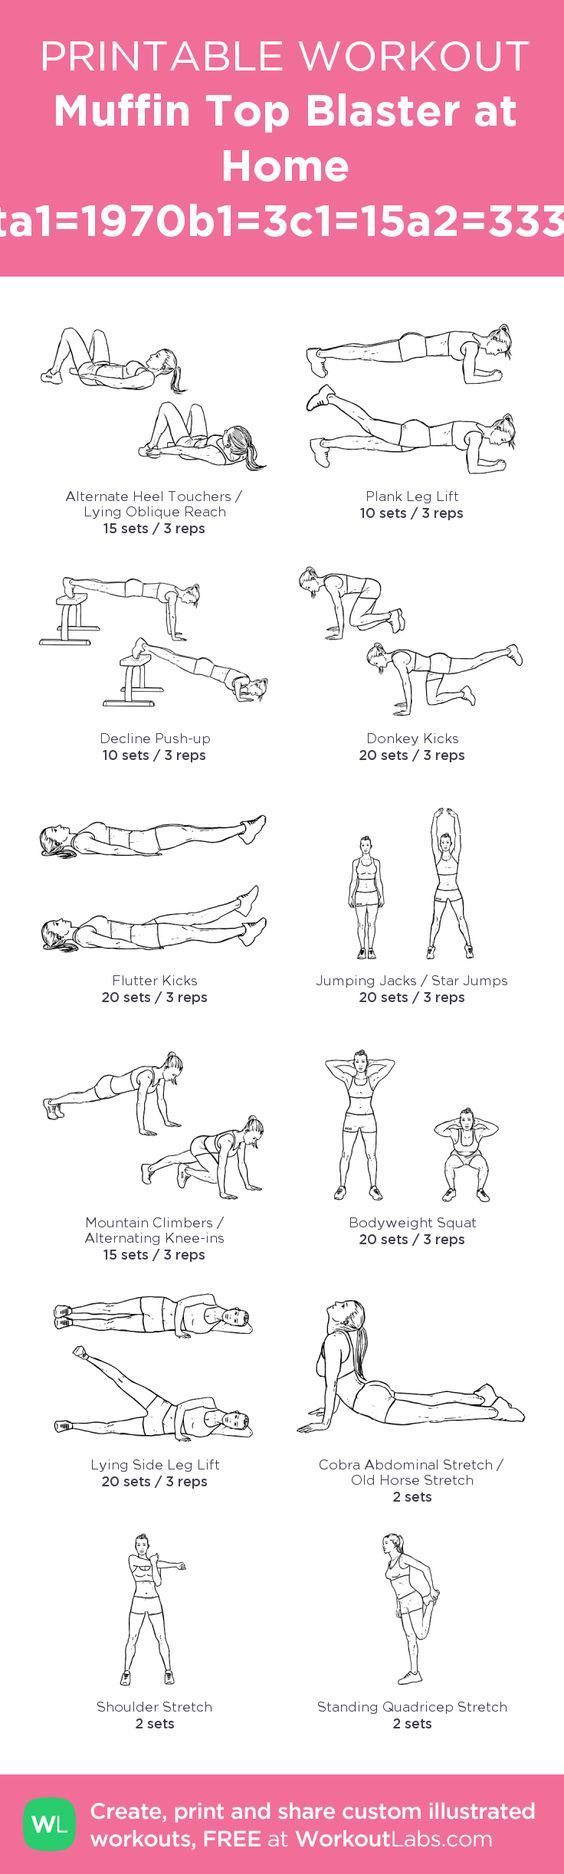 My personal ABS workout! Muffin Top Blaster at Home Workouta1=1970b1=3c1=15a2=3338b2=3c2 – my custom workout created at WorkoutLabs.com • Click through to download as printable PDF! #customworkout: